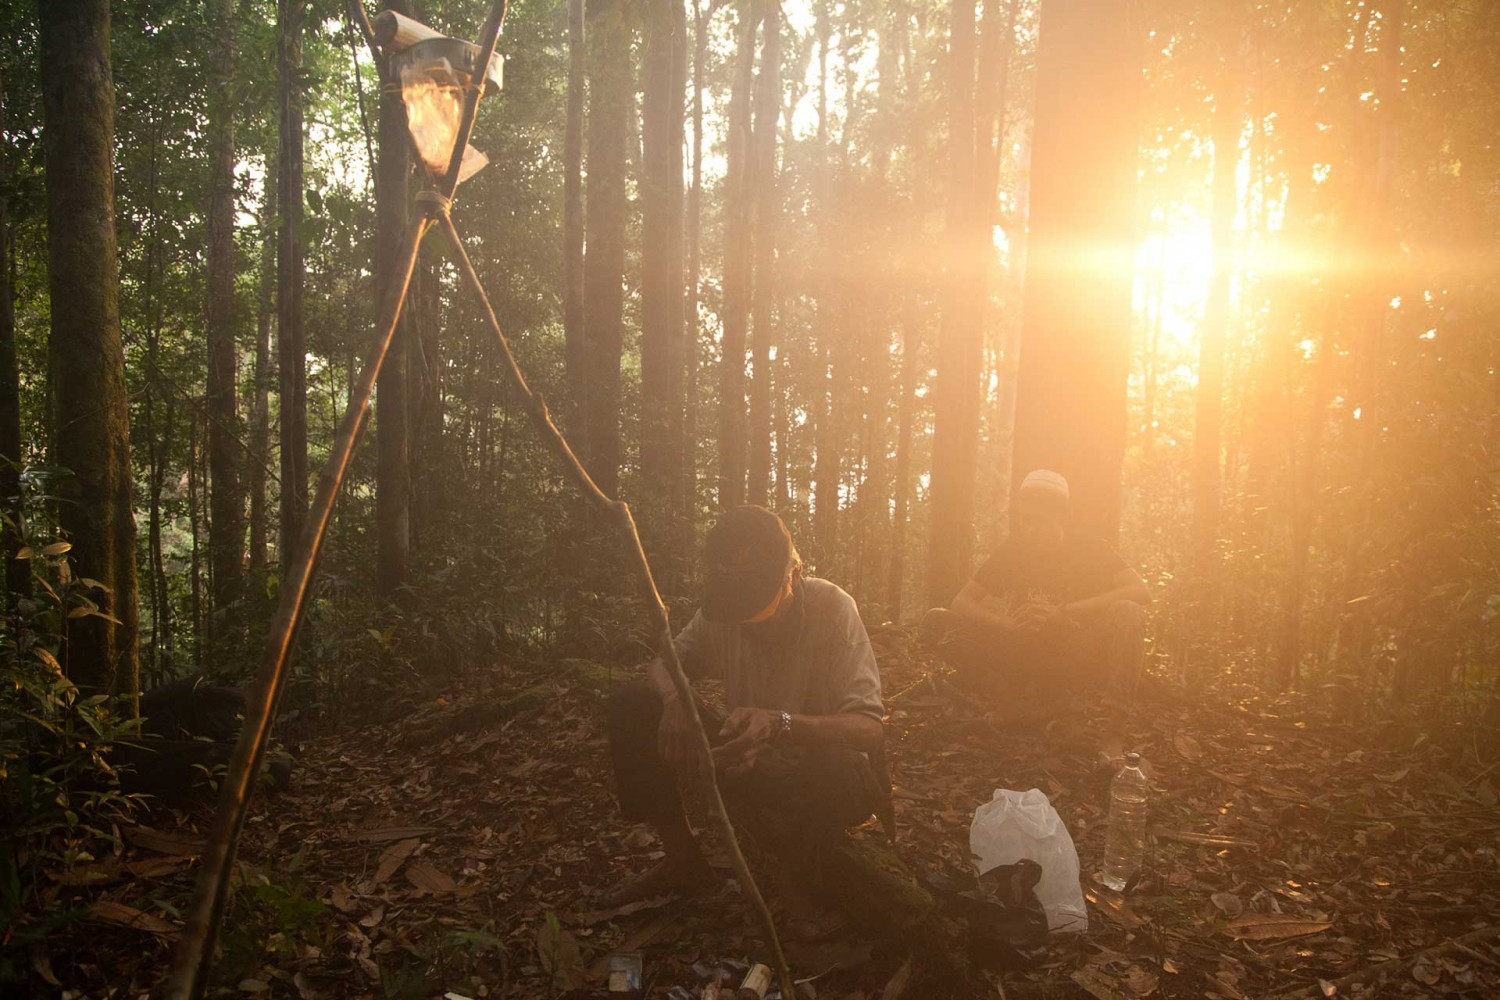 Gunung Bondang Expedition: a Biol-Cultural Survey of an isolated montane forest in Central Kalimantan, Borneo